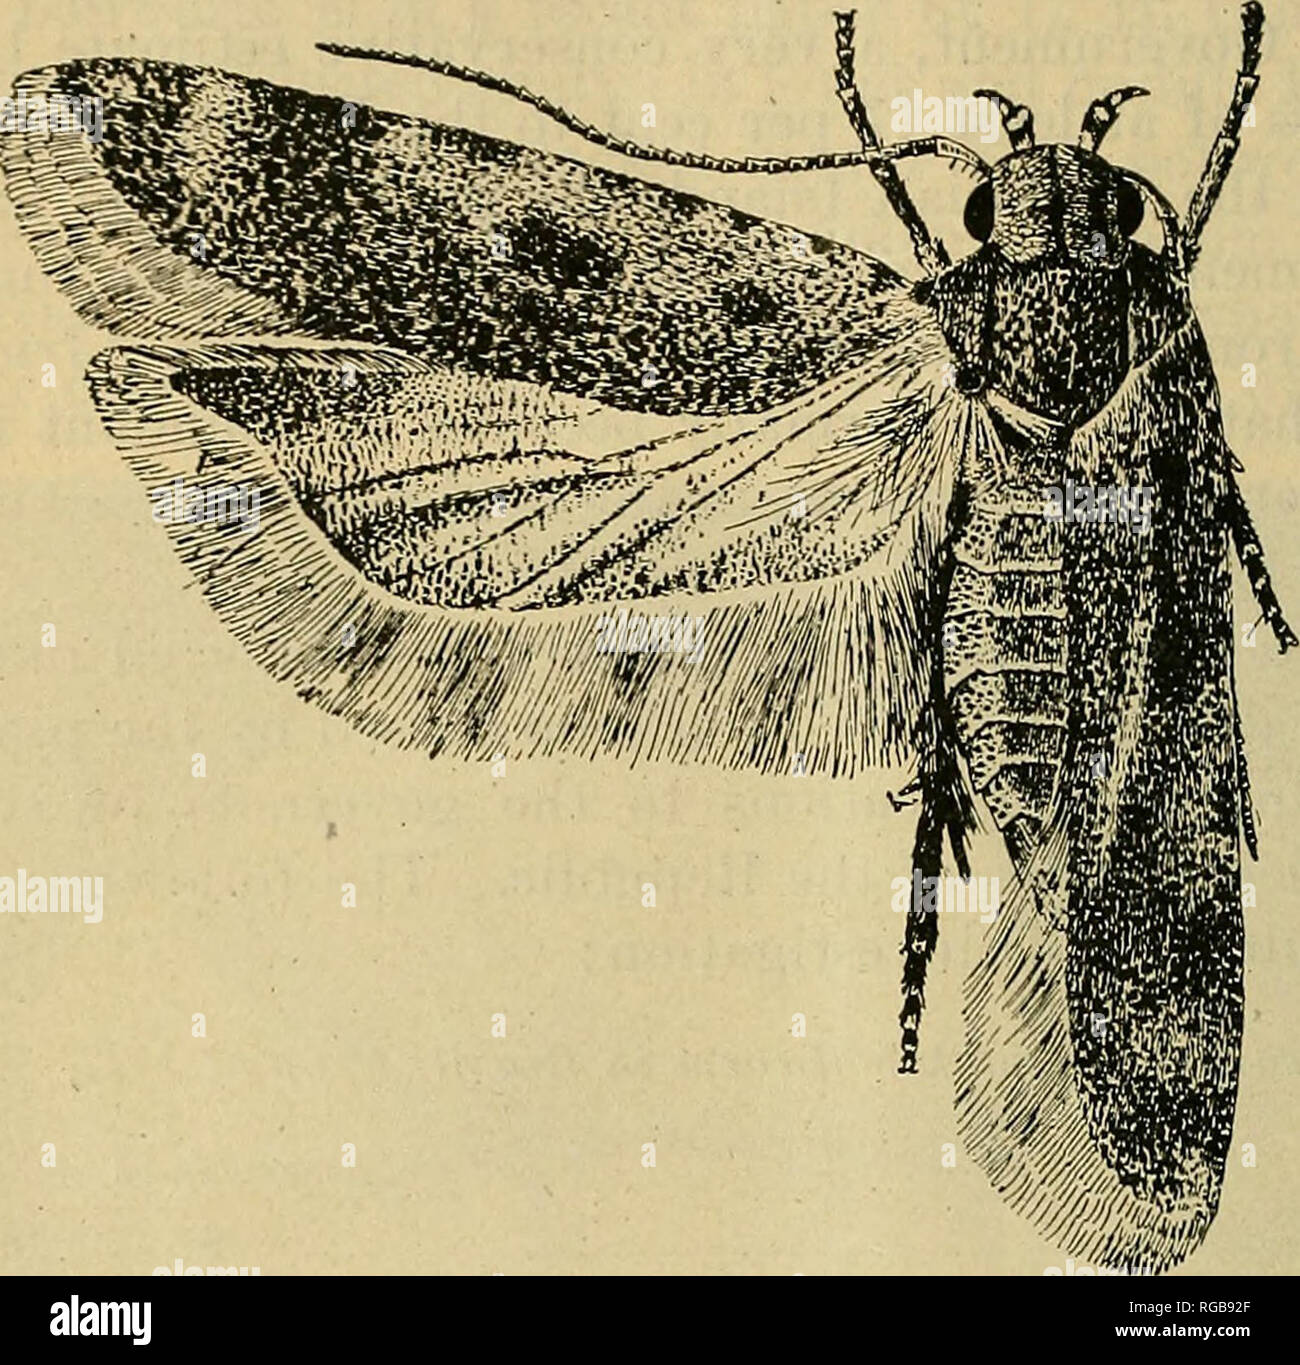 . Bulletin of the U.S. Department of Agriculture. Agriculture; Agriculture. 8 BULLETTlSr 723, U. S. DEPARTMENT OF AGRICULTURE. clothes moth of this countiy. From tip to tip of the extended wings it measures from three-fifths to four-fifths of an inch. , It is of a dark-brown color, the forewings ending in a rather sharp point. The hindwings are somewhat broader than the forewings and end in an even sharper point. The eggs are very small objects, somewhat oval, about one-twenty-fifth of an inch long and one-fiftieth of an inch broad. The surface is white and finely wrinkled. The larva (fig. 3)  - Stock Image